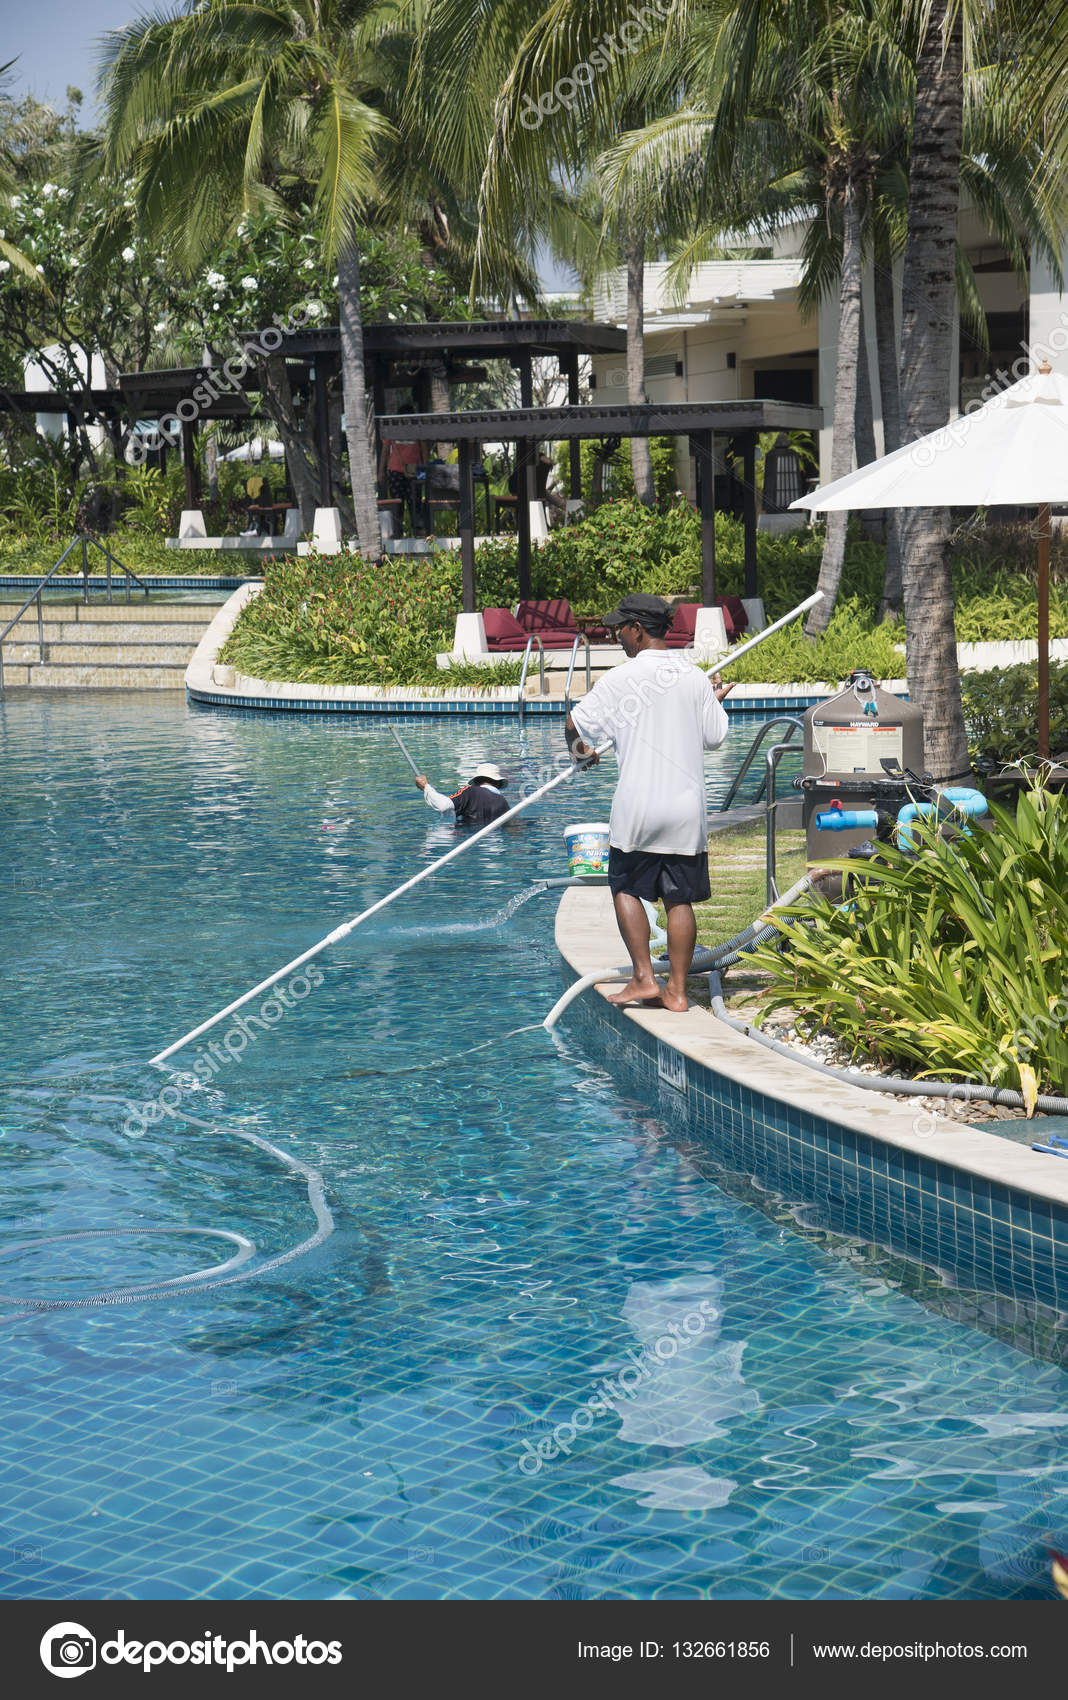 Hotel workers cleaning a swimming pool. Thailand 2014 ...